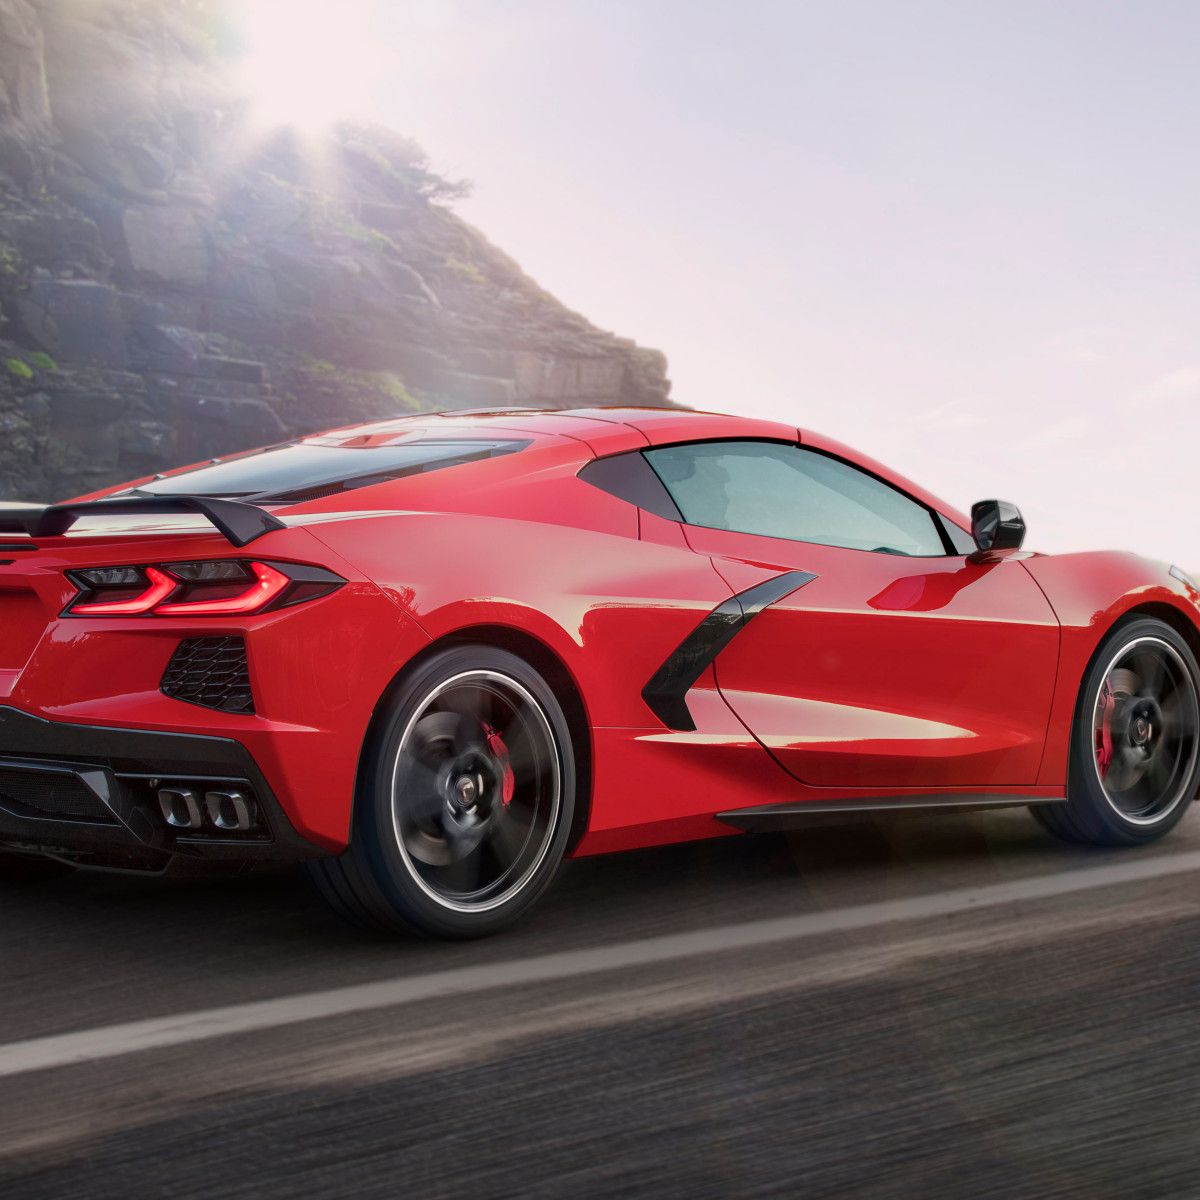 2020 Chevrolet Corvette C8 Red Car Wallpaper 4k Chevrolet Corvette Chevrolet Corvette